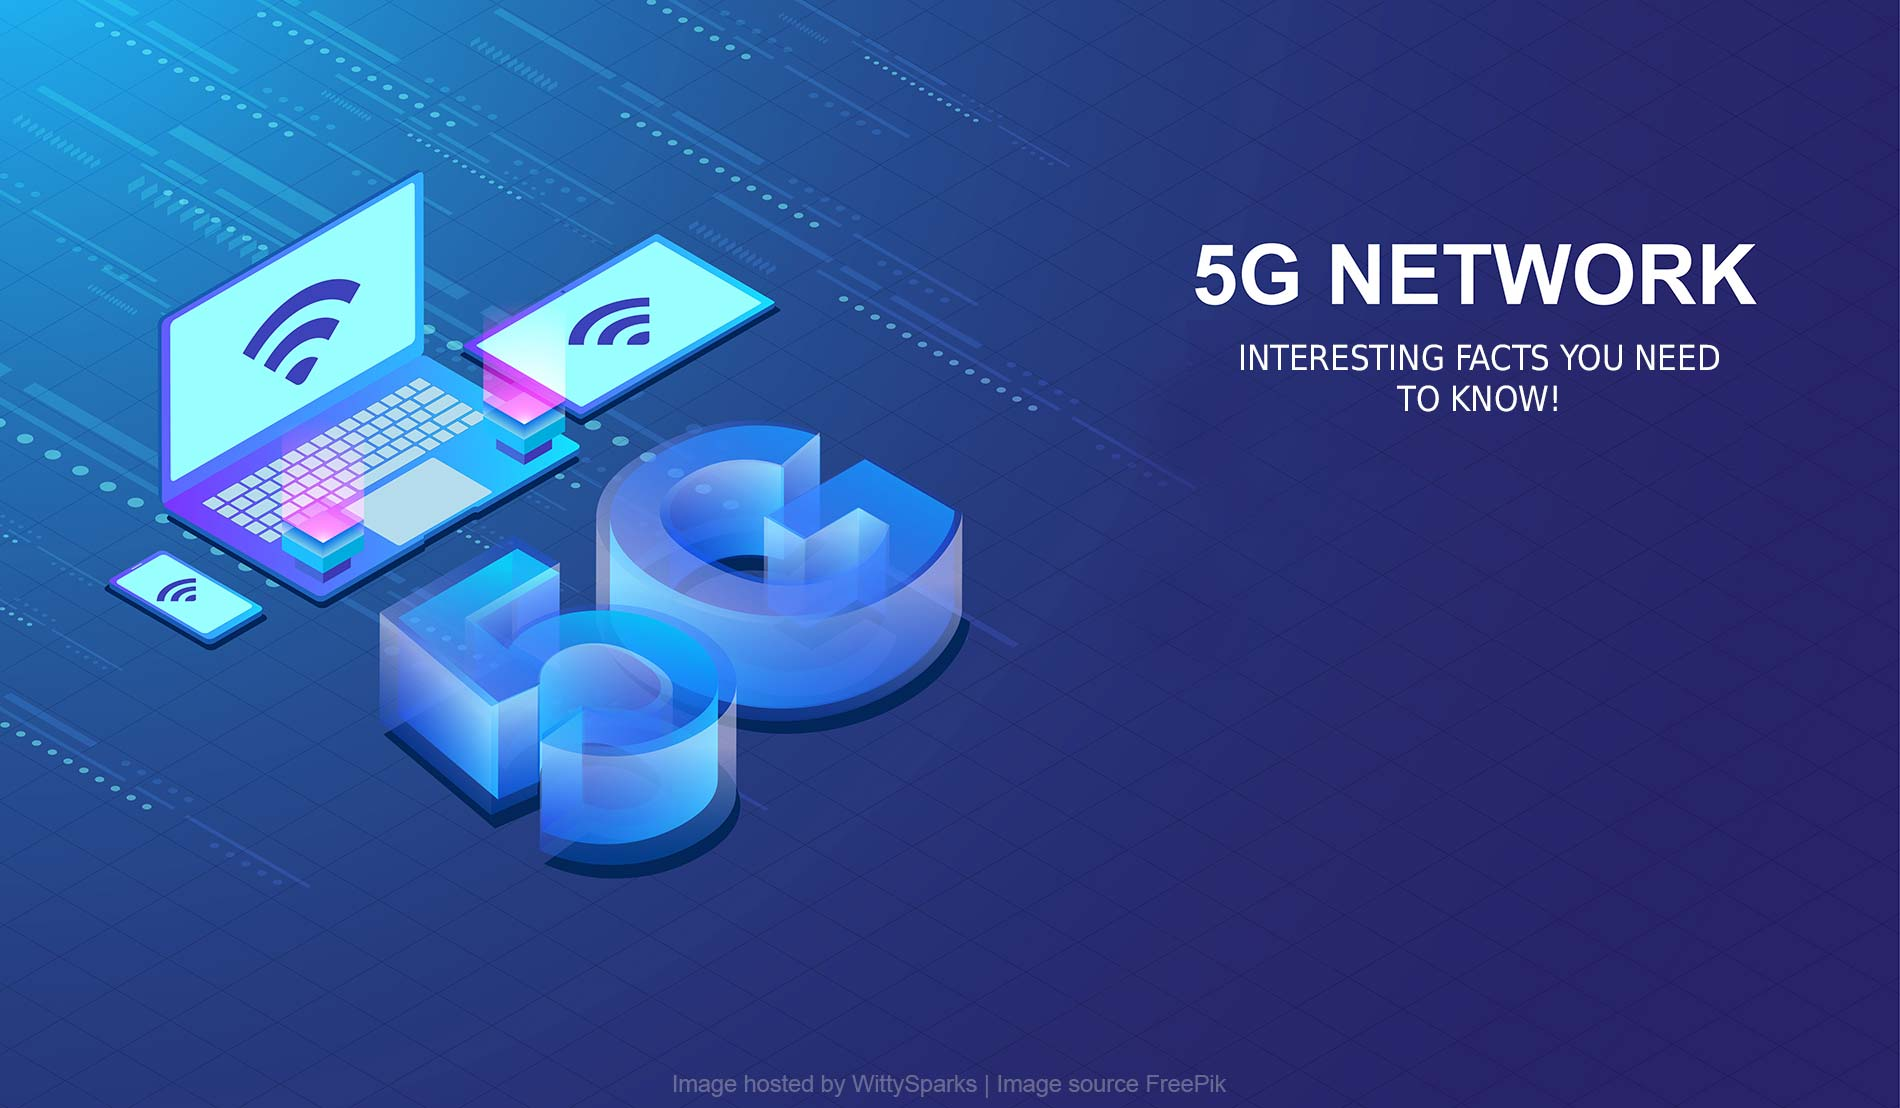 Facts you need to know about 5G Network